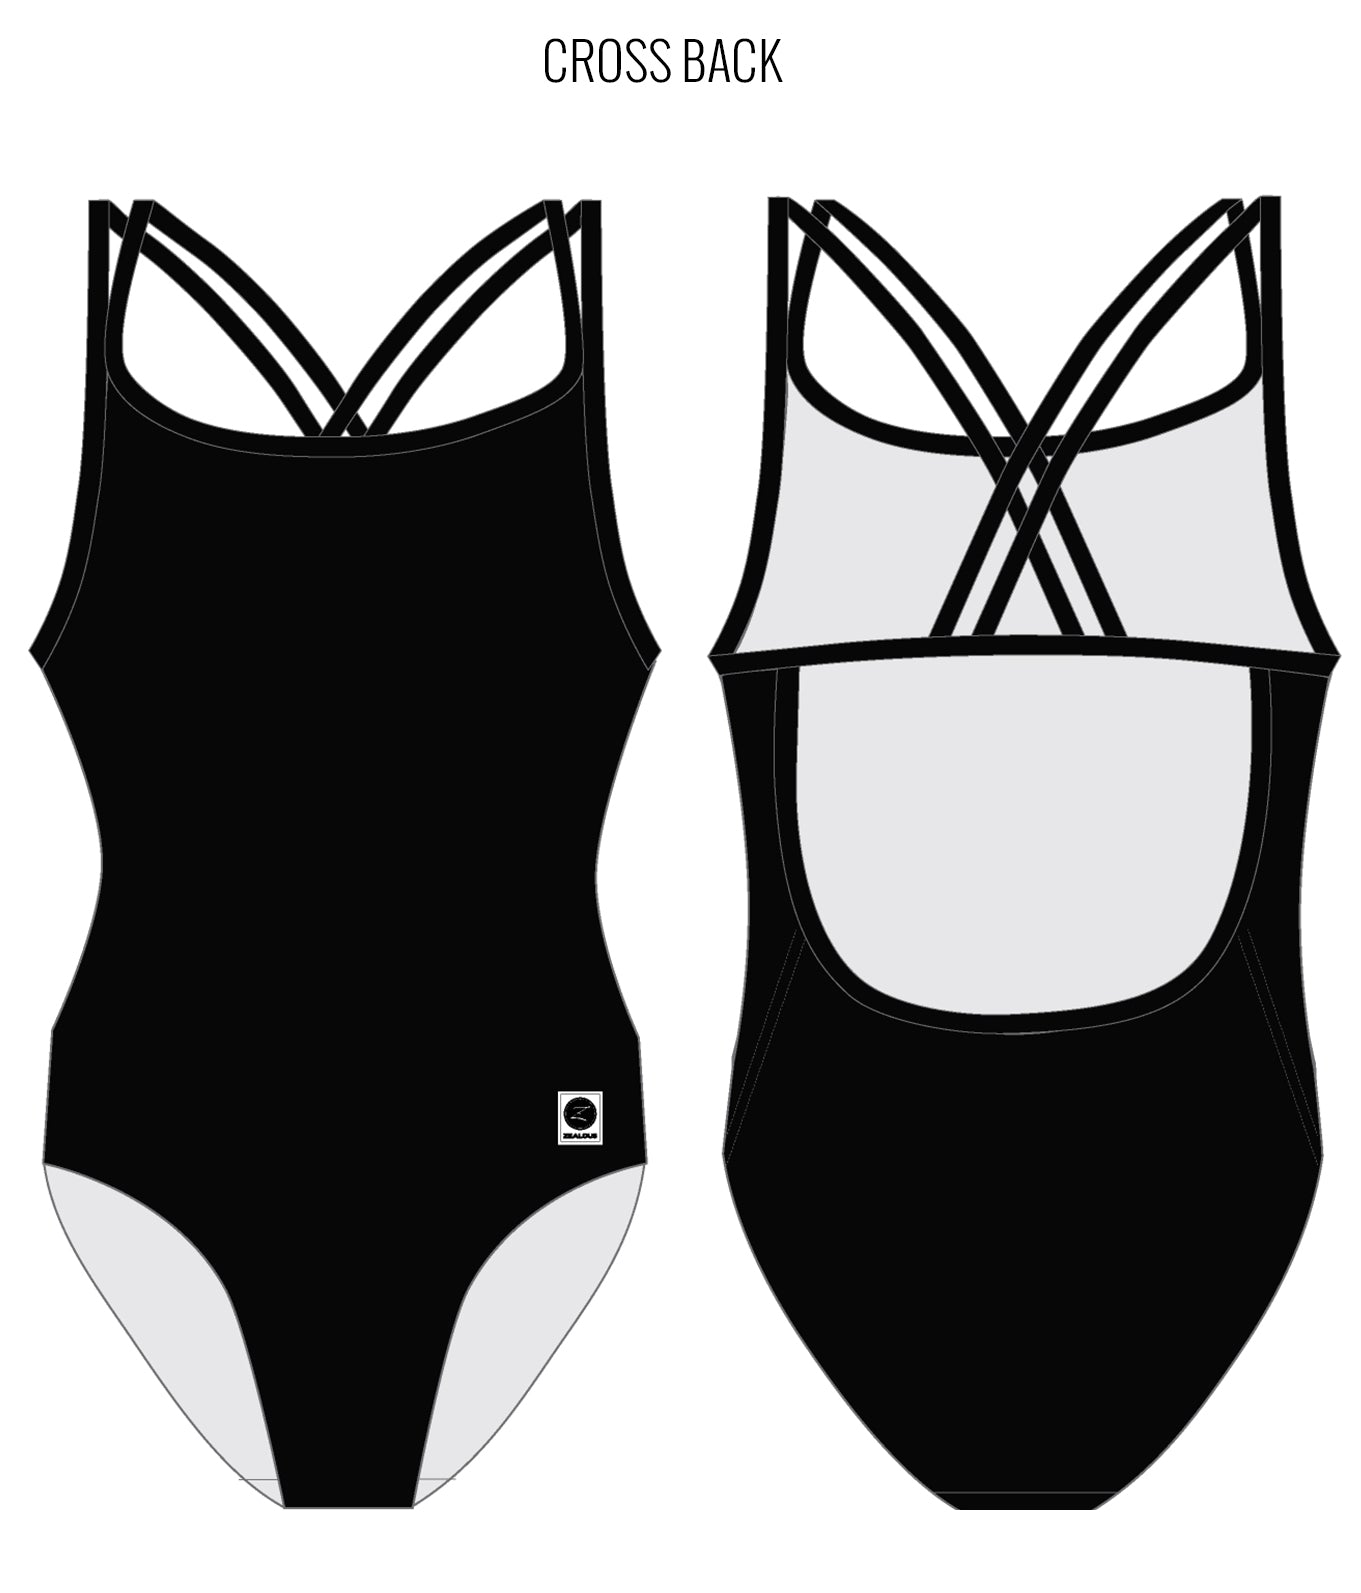 PITCH BLACK - FEMALE Personalised Swimwear - Shop Zealous Training Swimwear